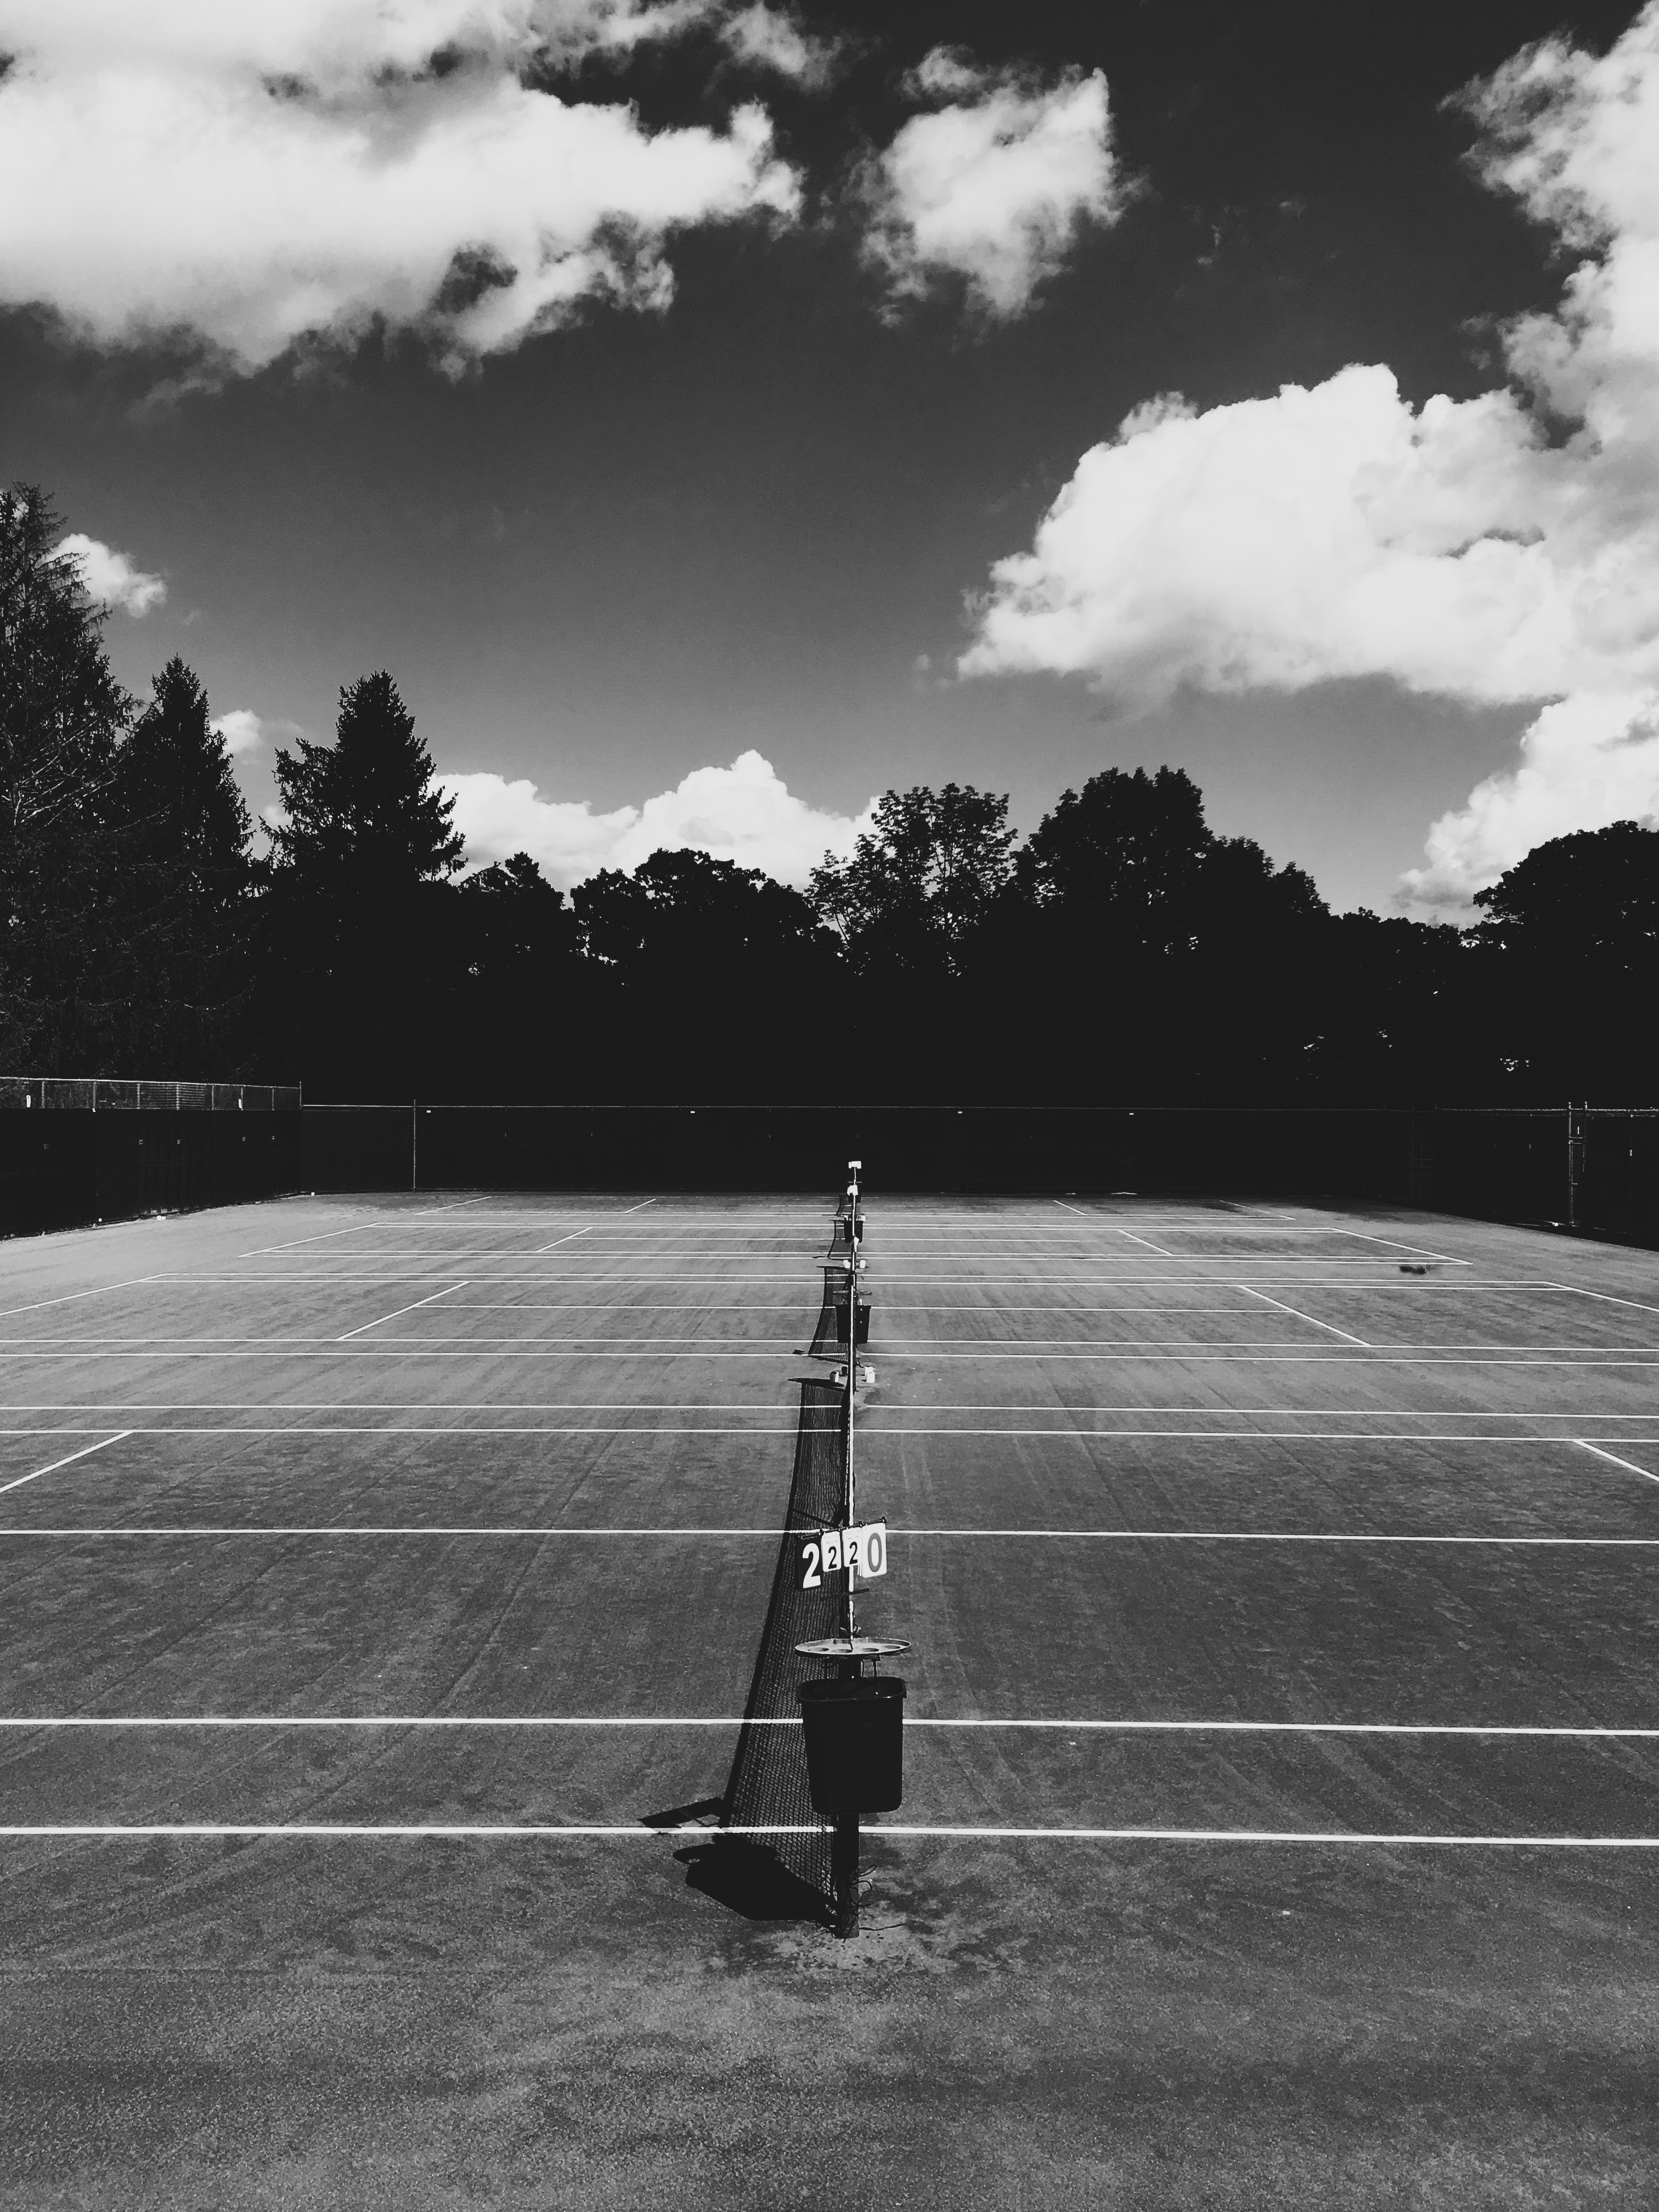 A look down the middle of a tennis net with a darkened background on a partially cloudy day.